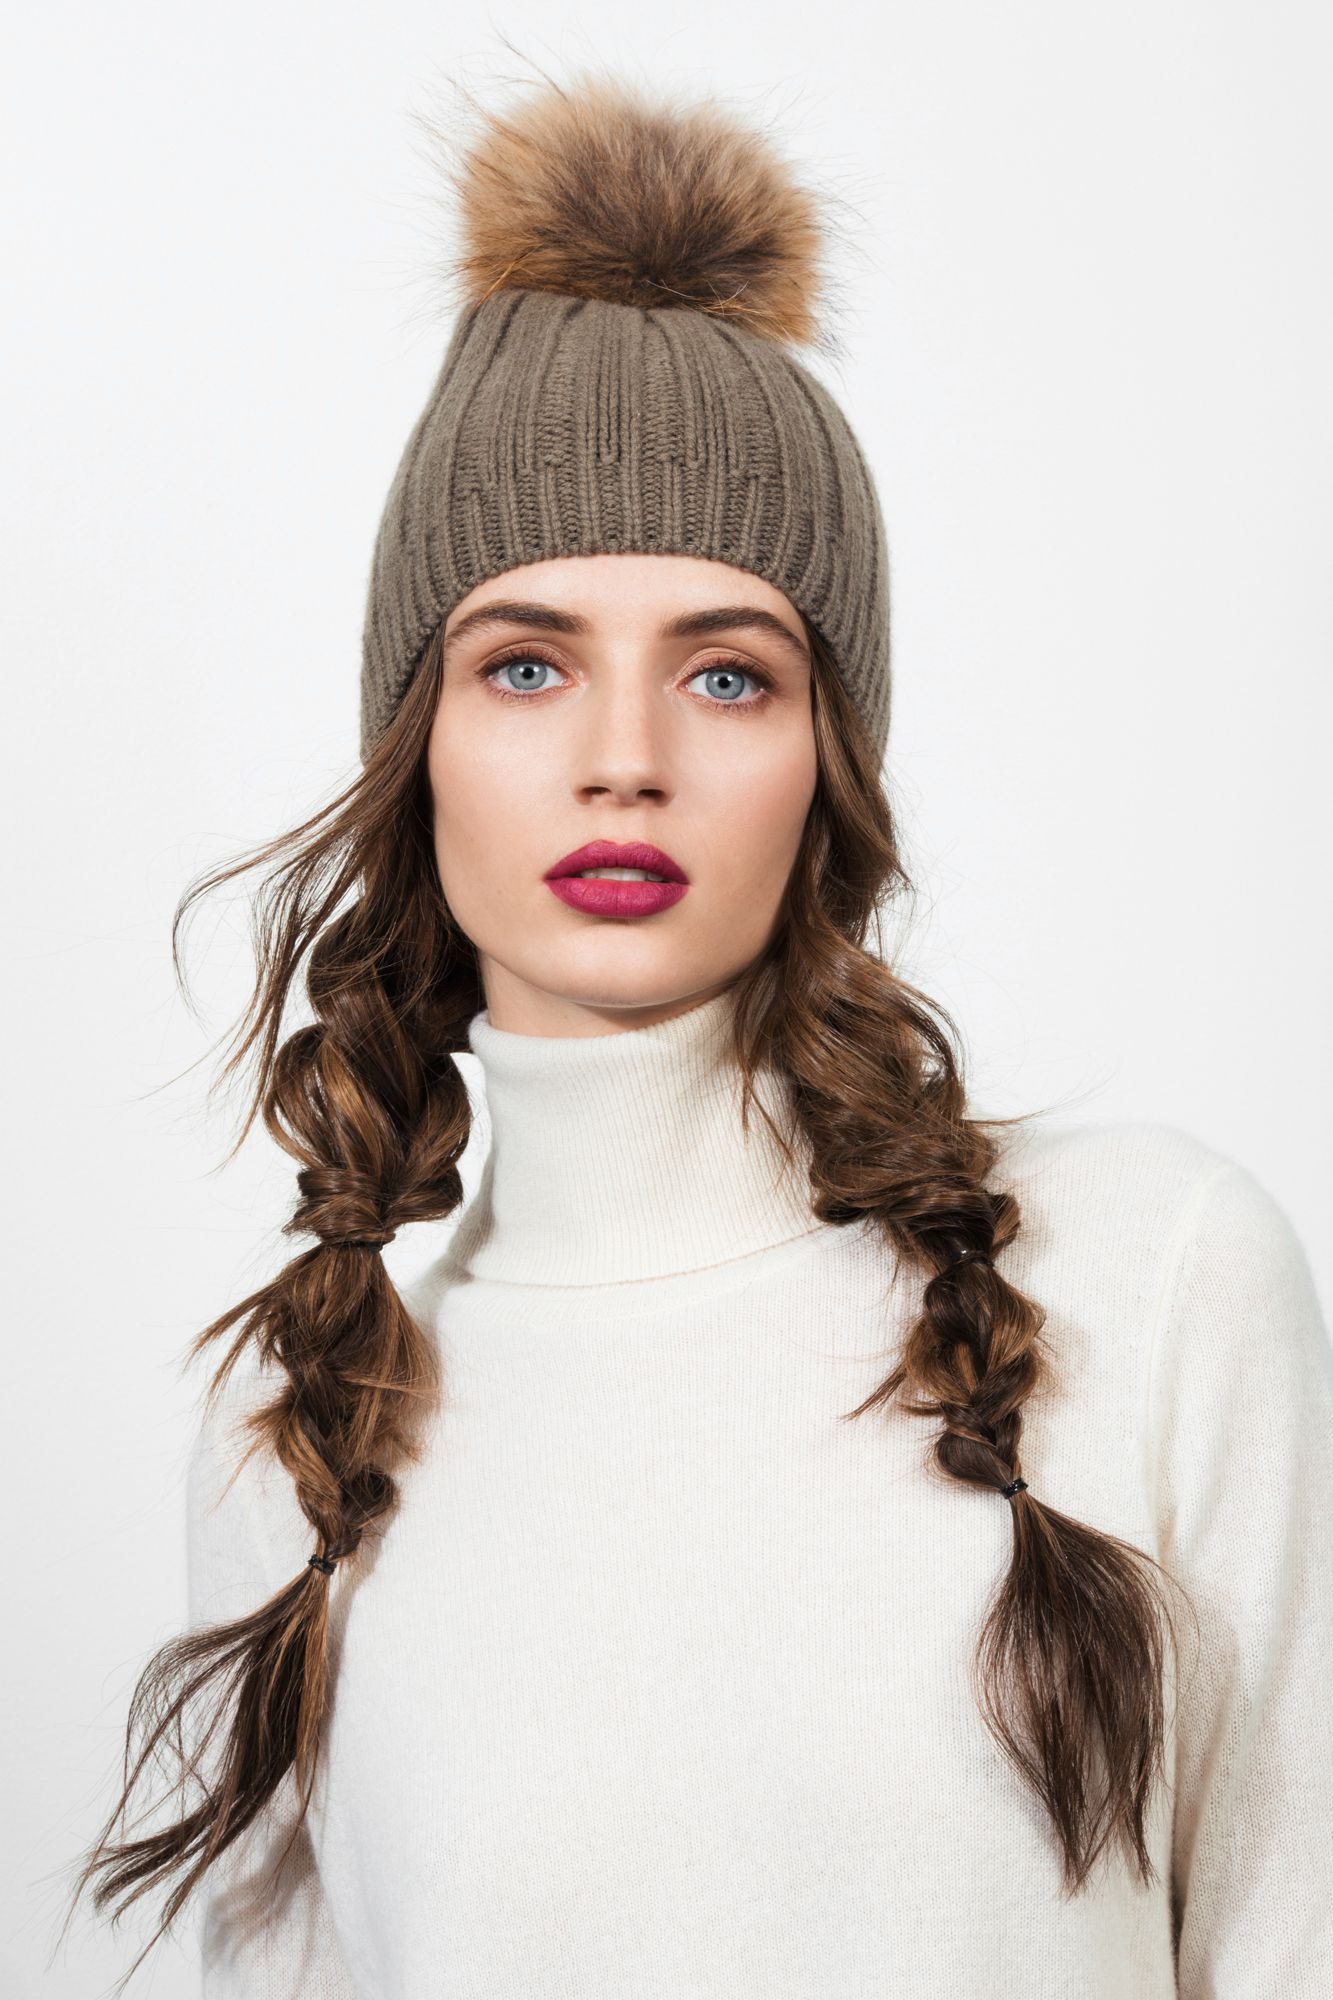 "<p>Pigtails are a beanie no-brainer—the rougher and more deconstructed the better when there's a pom-pom in the mix. Alternate between fishtail-braiding, tying knots and doing the classic three-strand weave down the length. </p><p><strong>Joseph</strong> Cashmere Luxe Pompon Hat, $195, <a href=""http://www.joseph-fashion.com/hats/cashmere-luxe-pompon-hat/invt/w5123090709440"" target=""_blank"">joseph-fashion.com</a>.</p>"